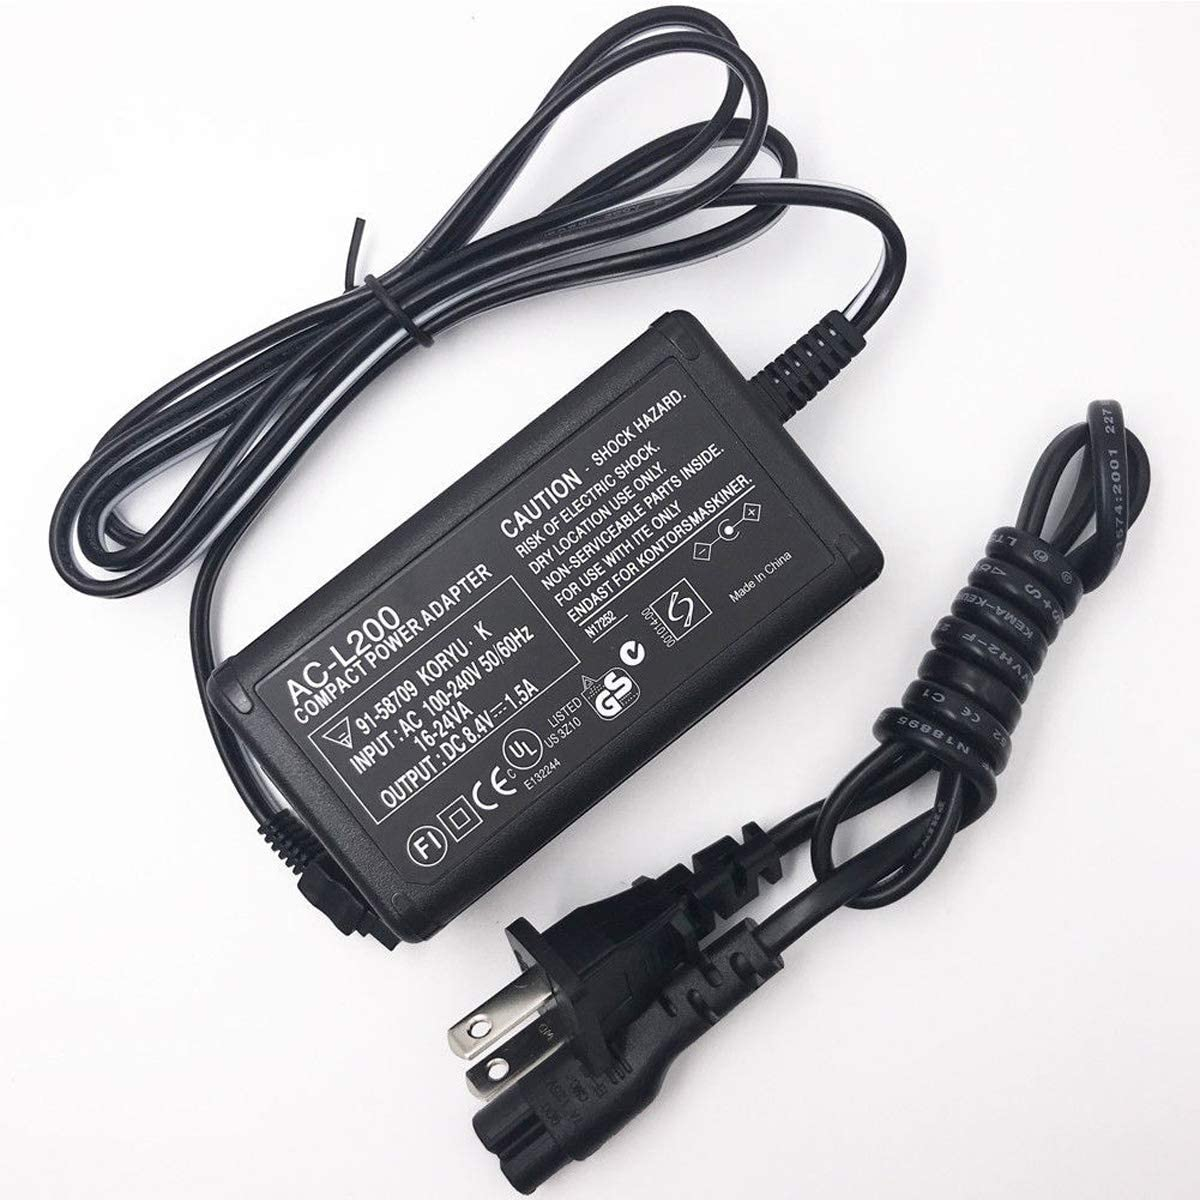 HDR-CX590VE Handycam Camcorder Dual Channel Battery Charger for Sony HDR-CX550VE HDR-CX560VE HDR-CX580VE HDR-CX570E